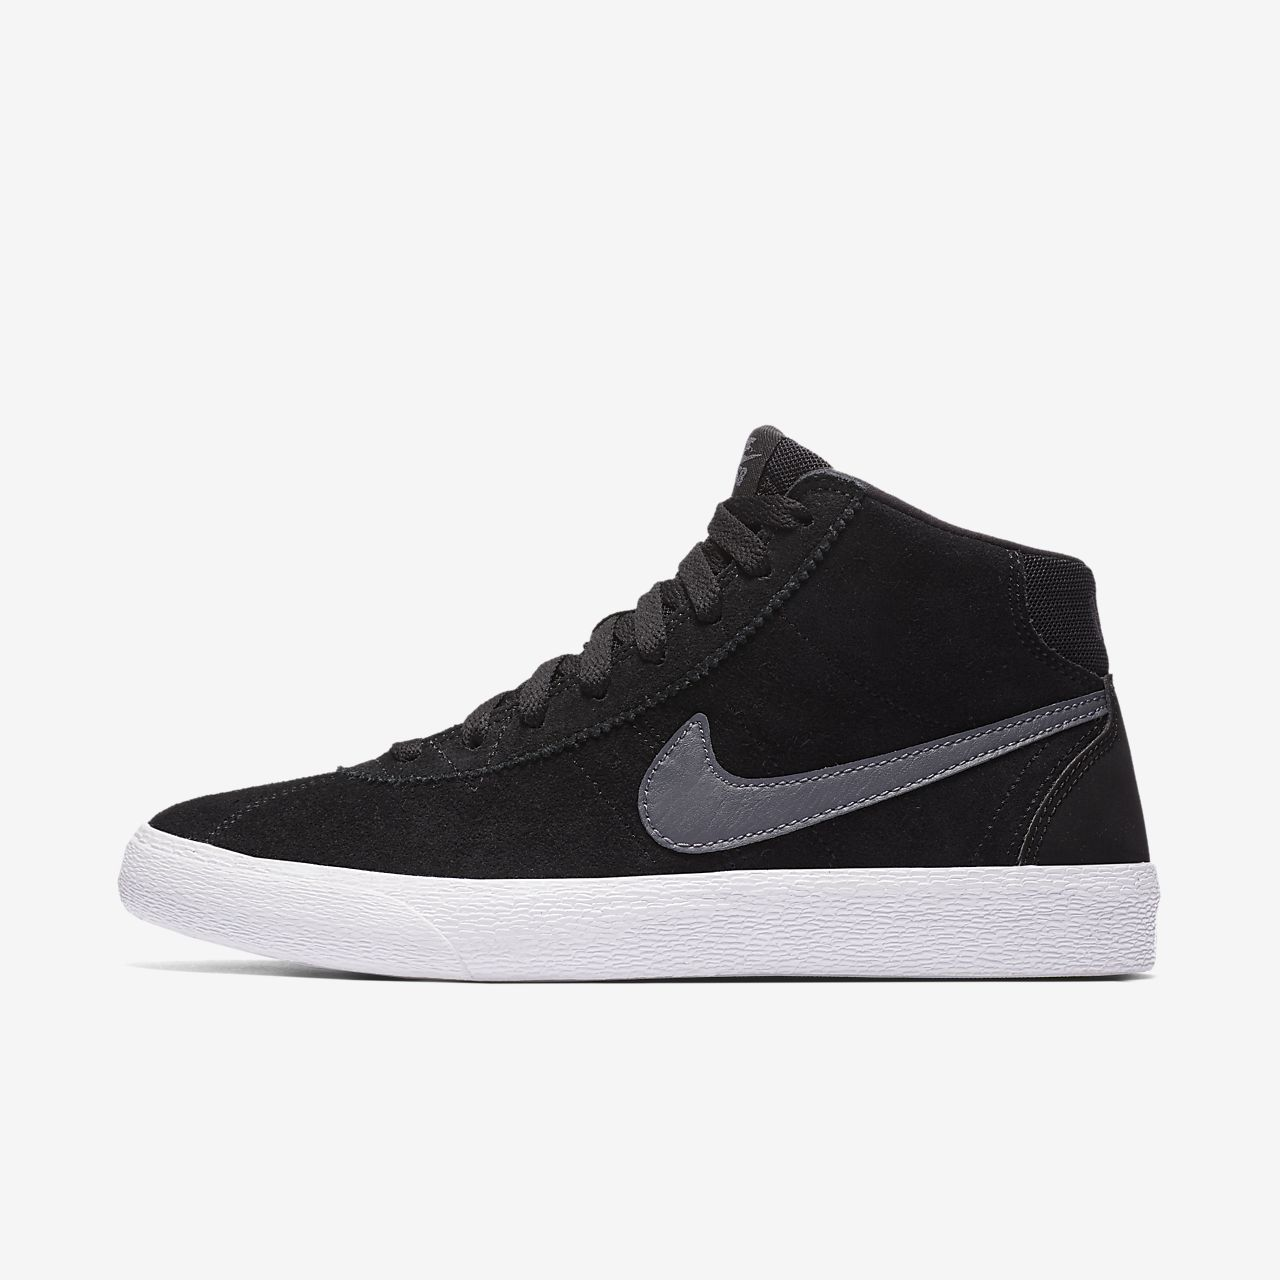 Nike Sb Bruin High Women S Skateboarding Shoe